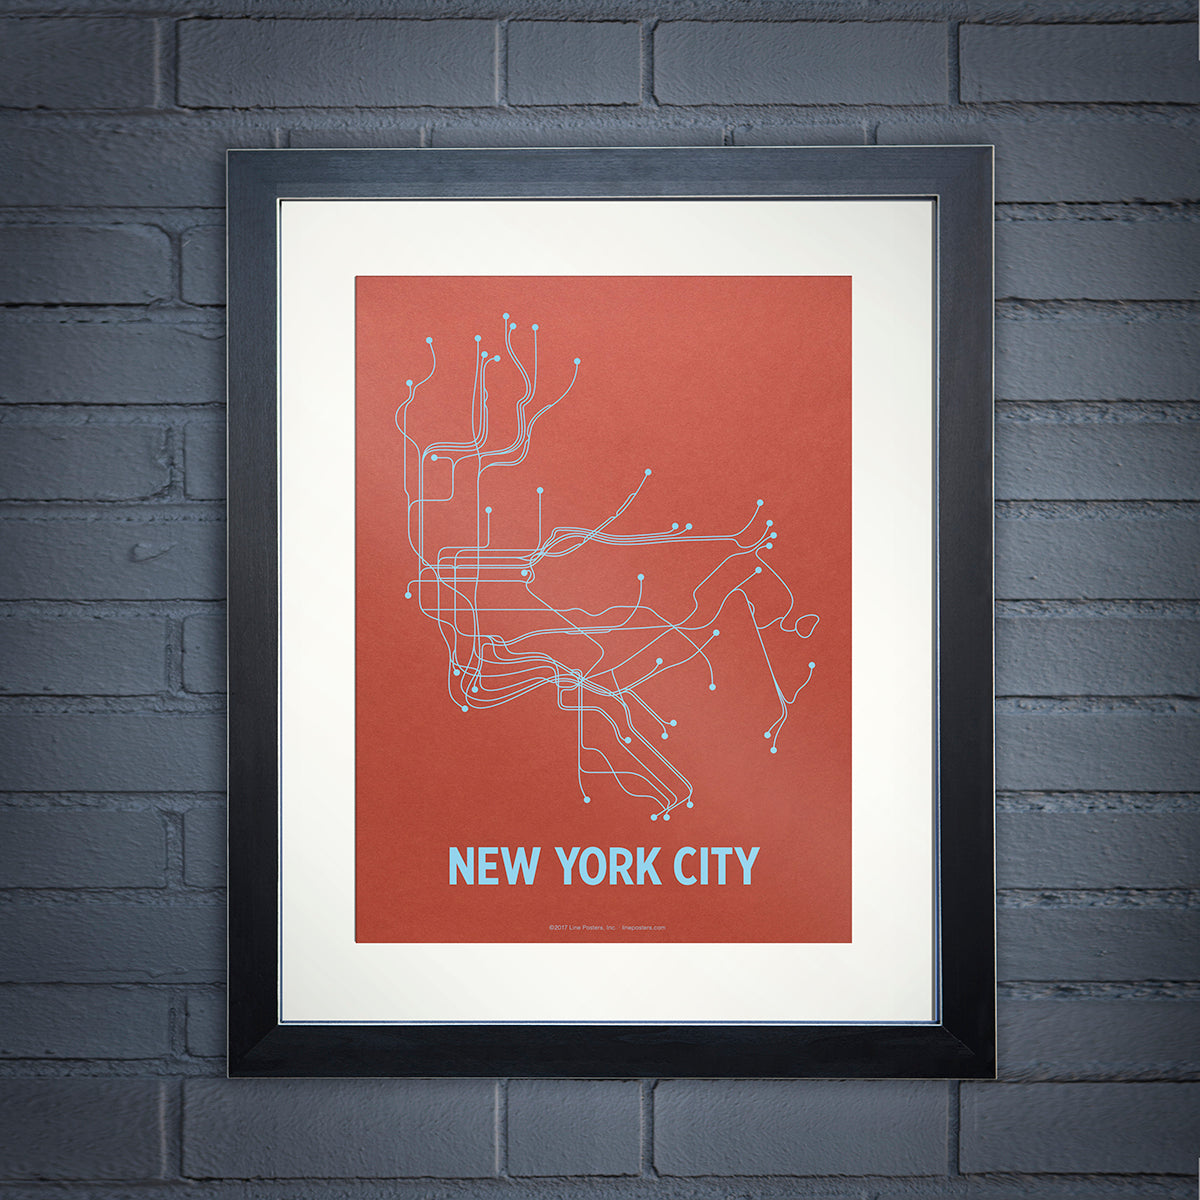 Boston Subway Map Poster.New York City Poster Lineposters